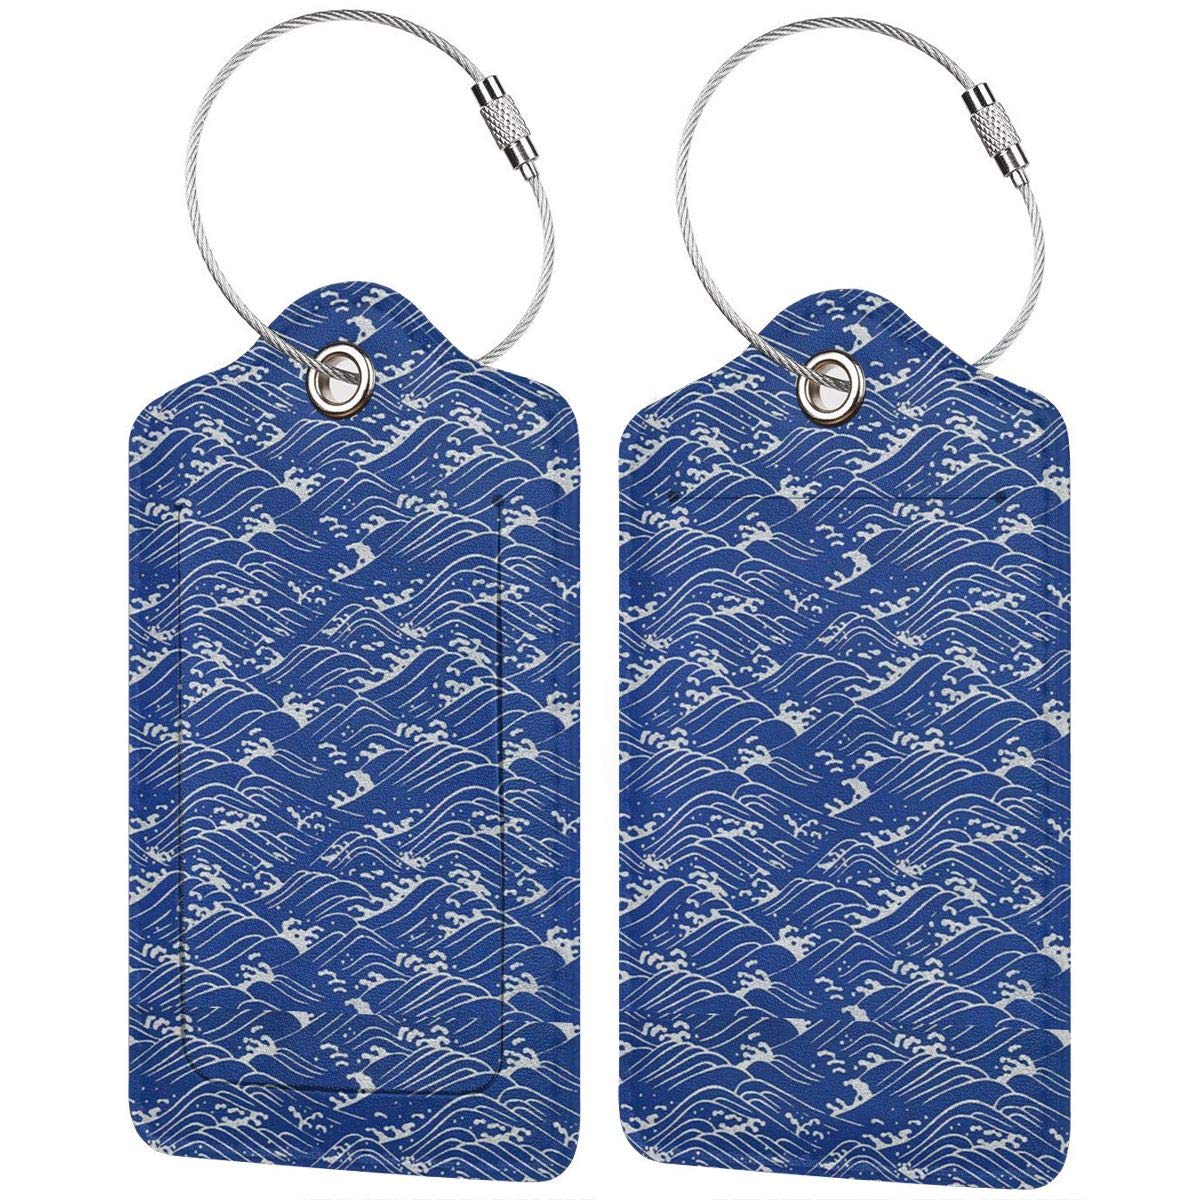 Leather Luggage Tags Full Privacy Cover and Stainless Steel Loop 1 2 4 Pcs Set Ocean Sea Wave 2.7 x 4.6 Blank Tag Key Tags for Instrument Baggage Bag Gift